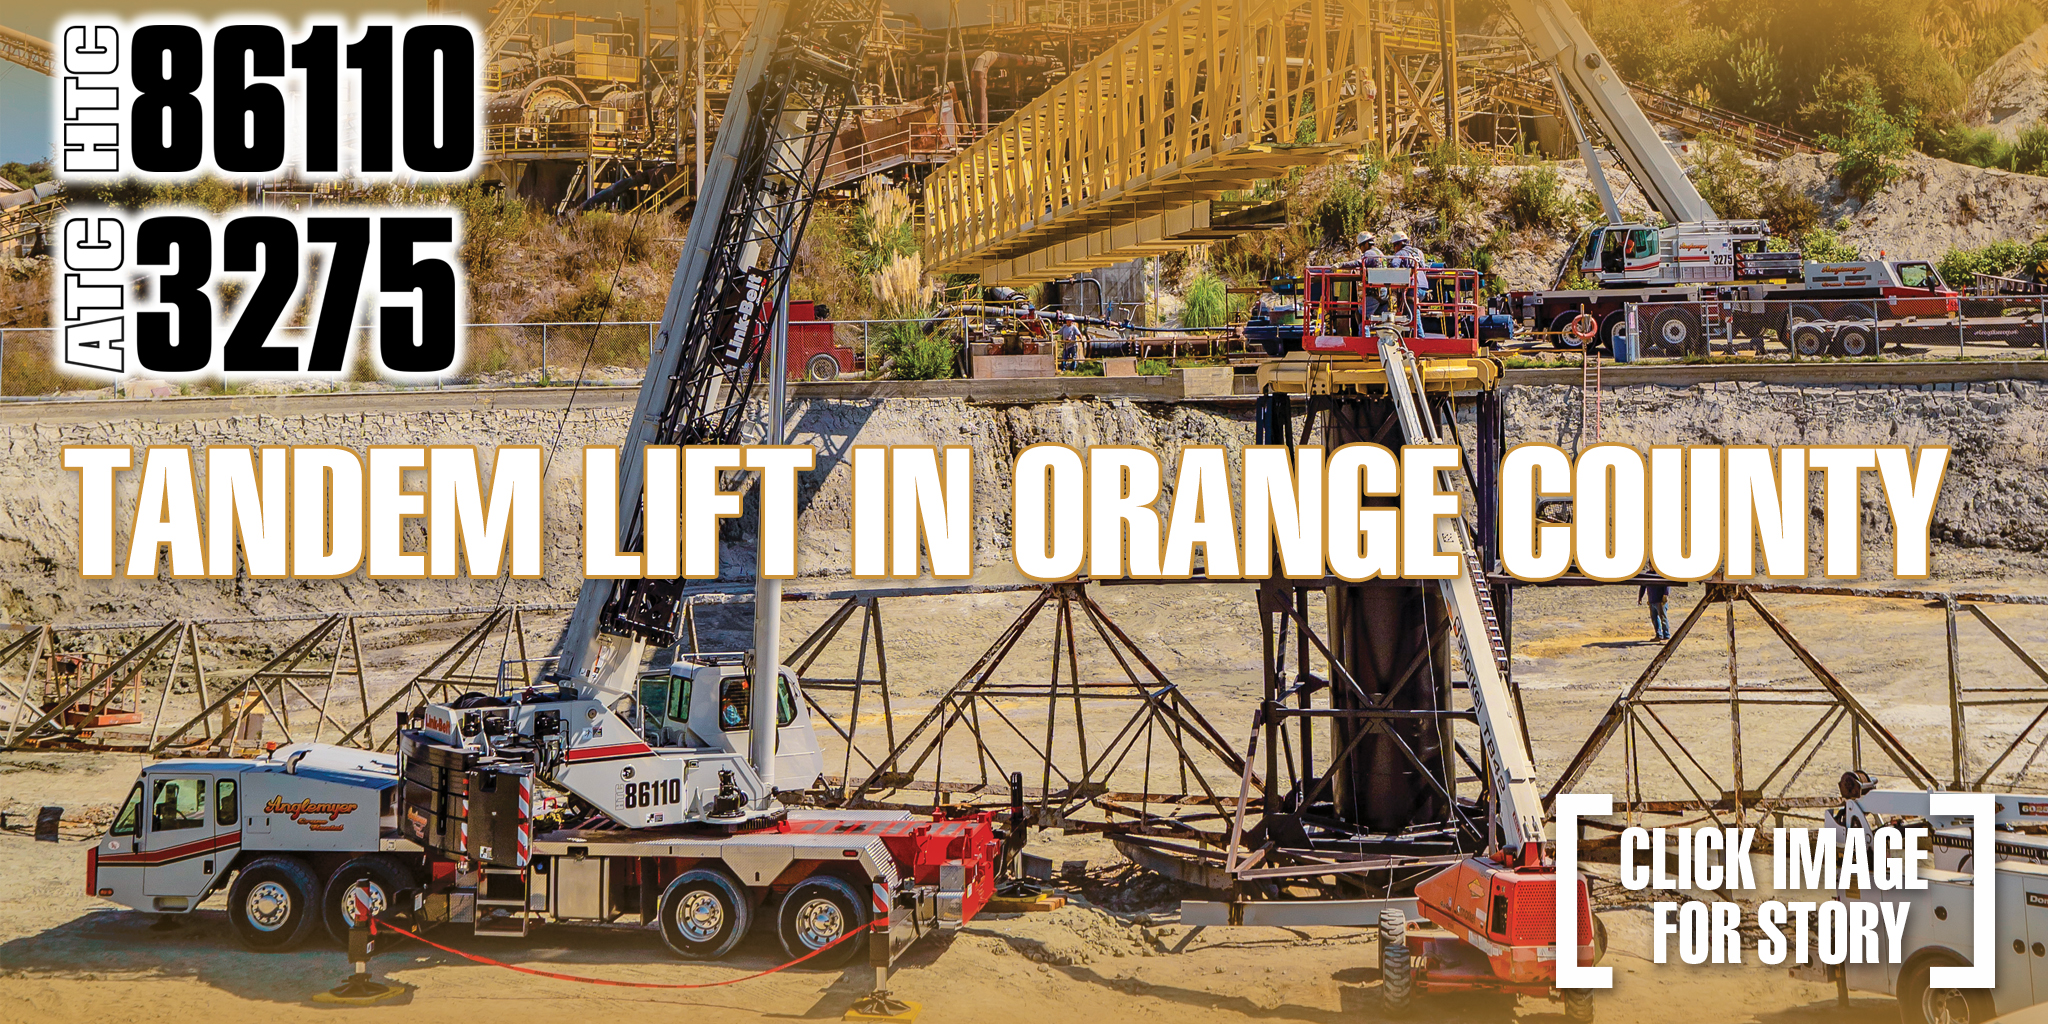 Tandem lift in Orange County with HTC-86110 and ATC-3275